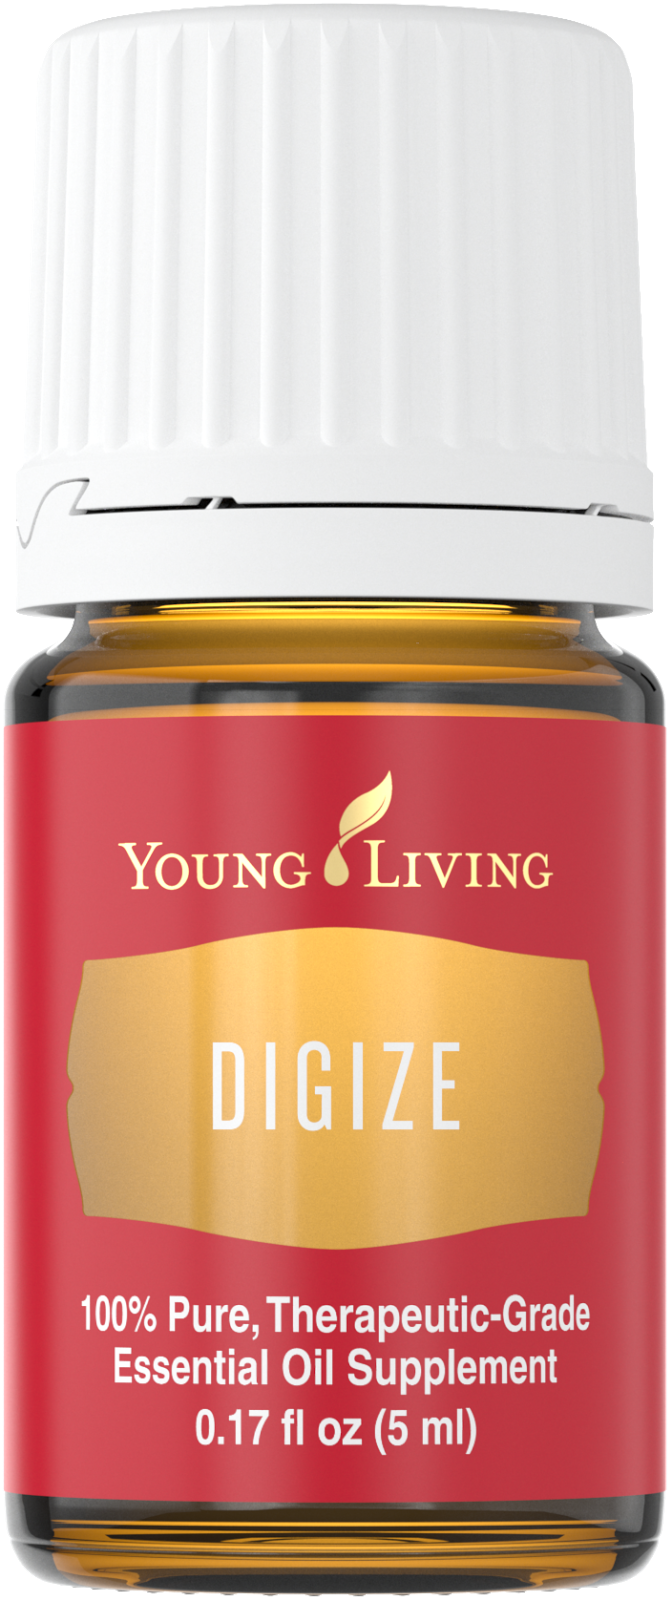 How To Use Digize Essential Oil Yleo Compliant Digize Essential Oil Vetiver Essential Oil Lemongrass Essential Oil